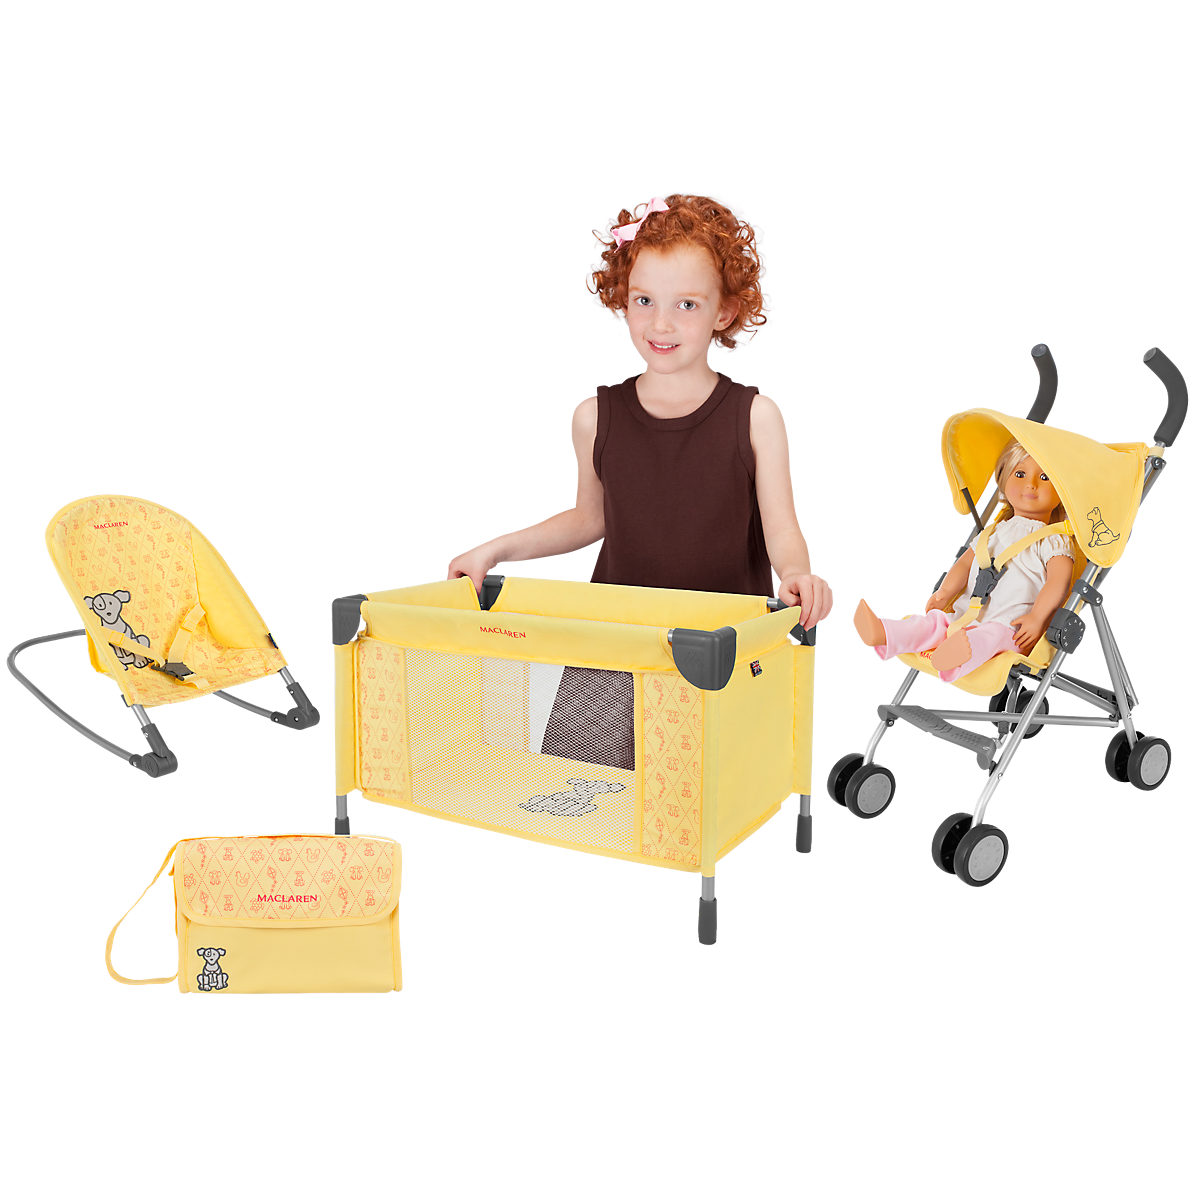 Deluxe Activity Set : TM1Y030482